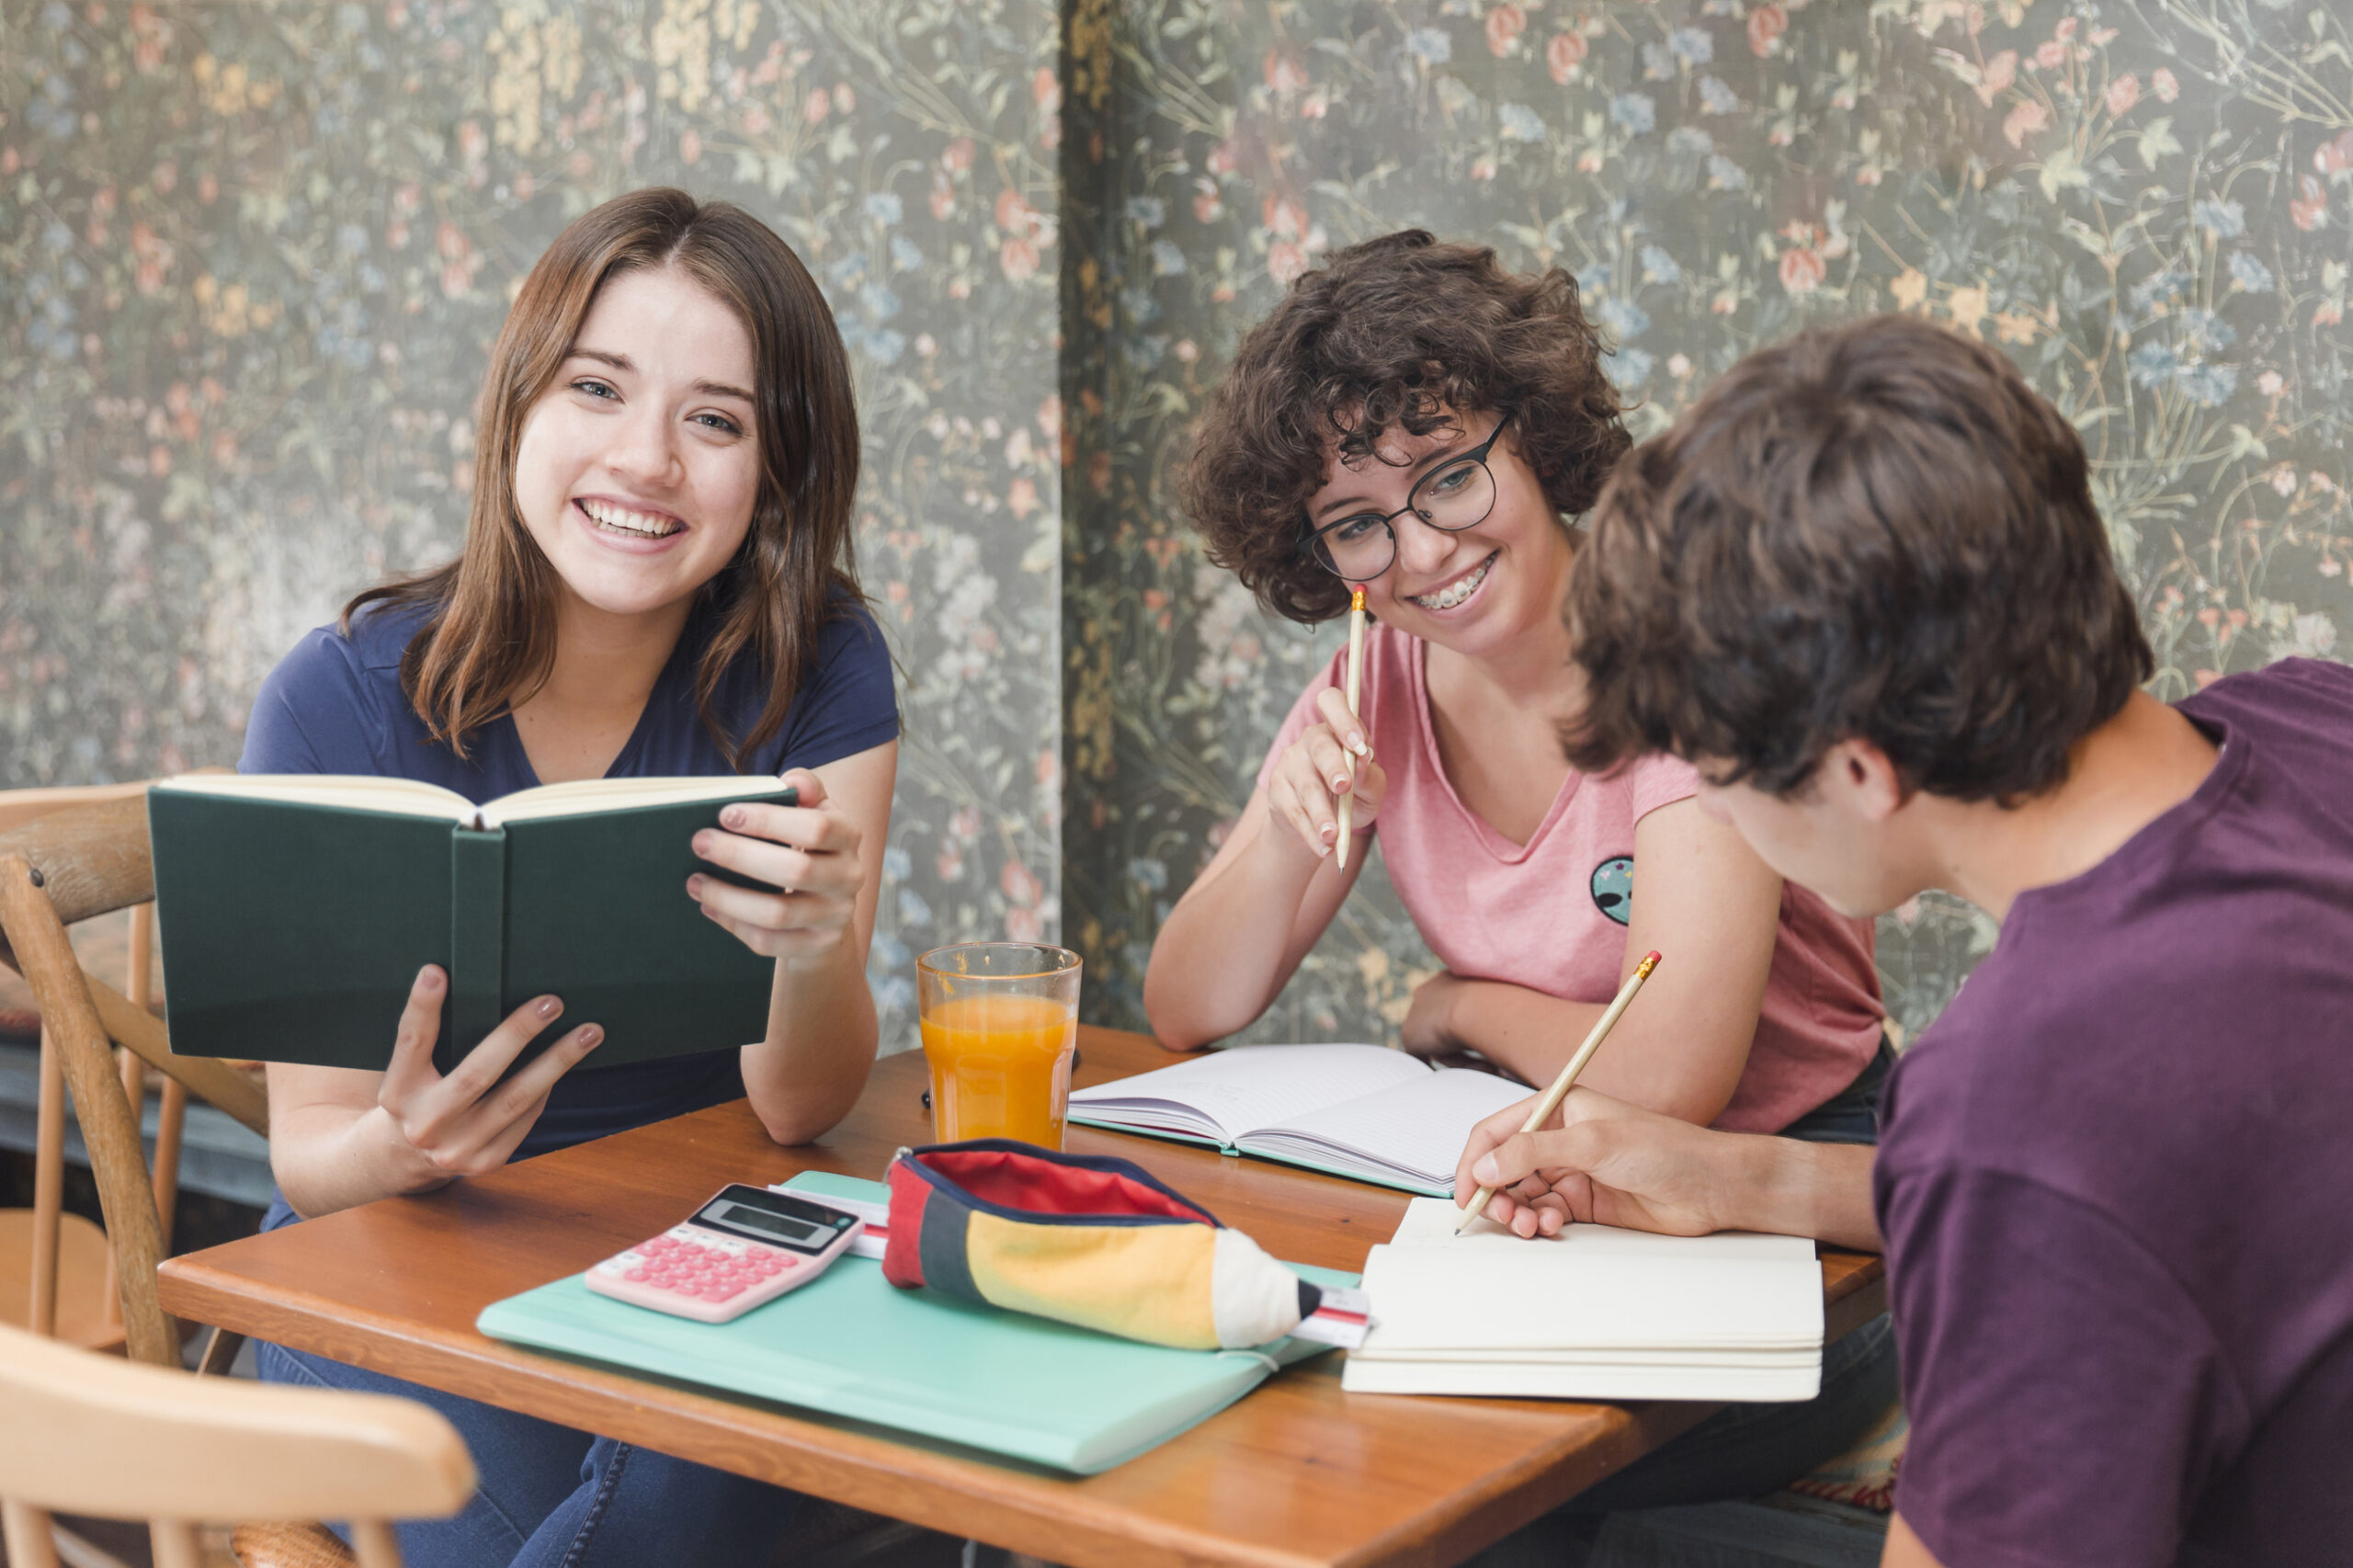 teenager-with-book-near-studying-friends